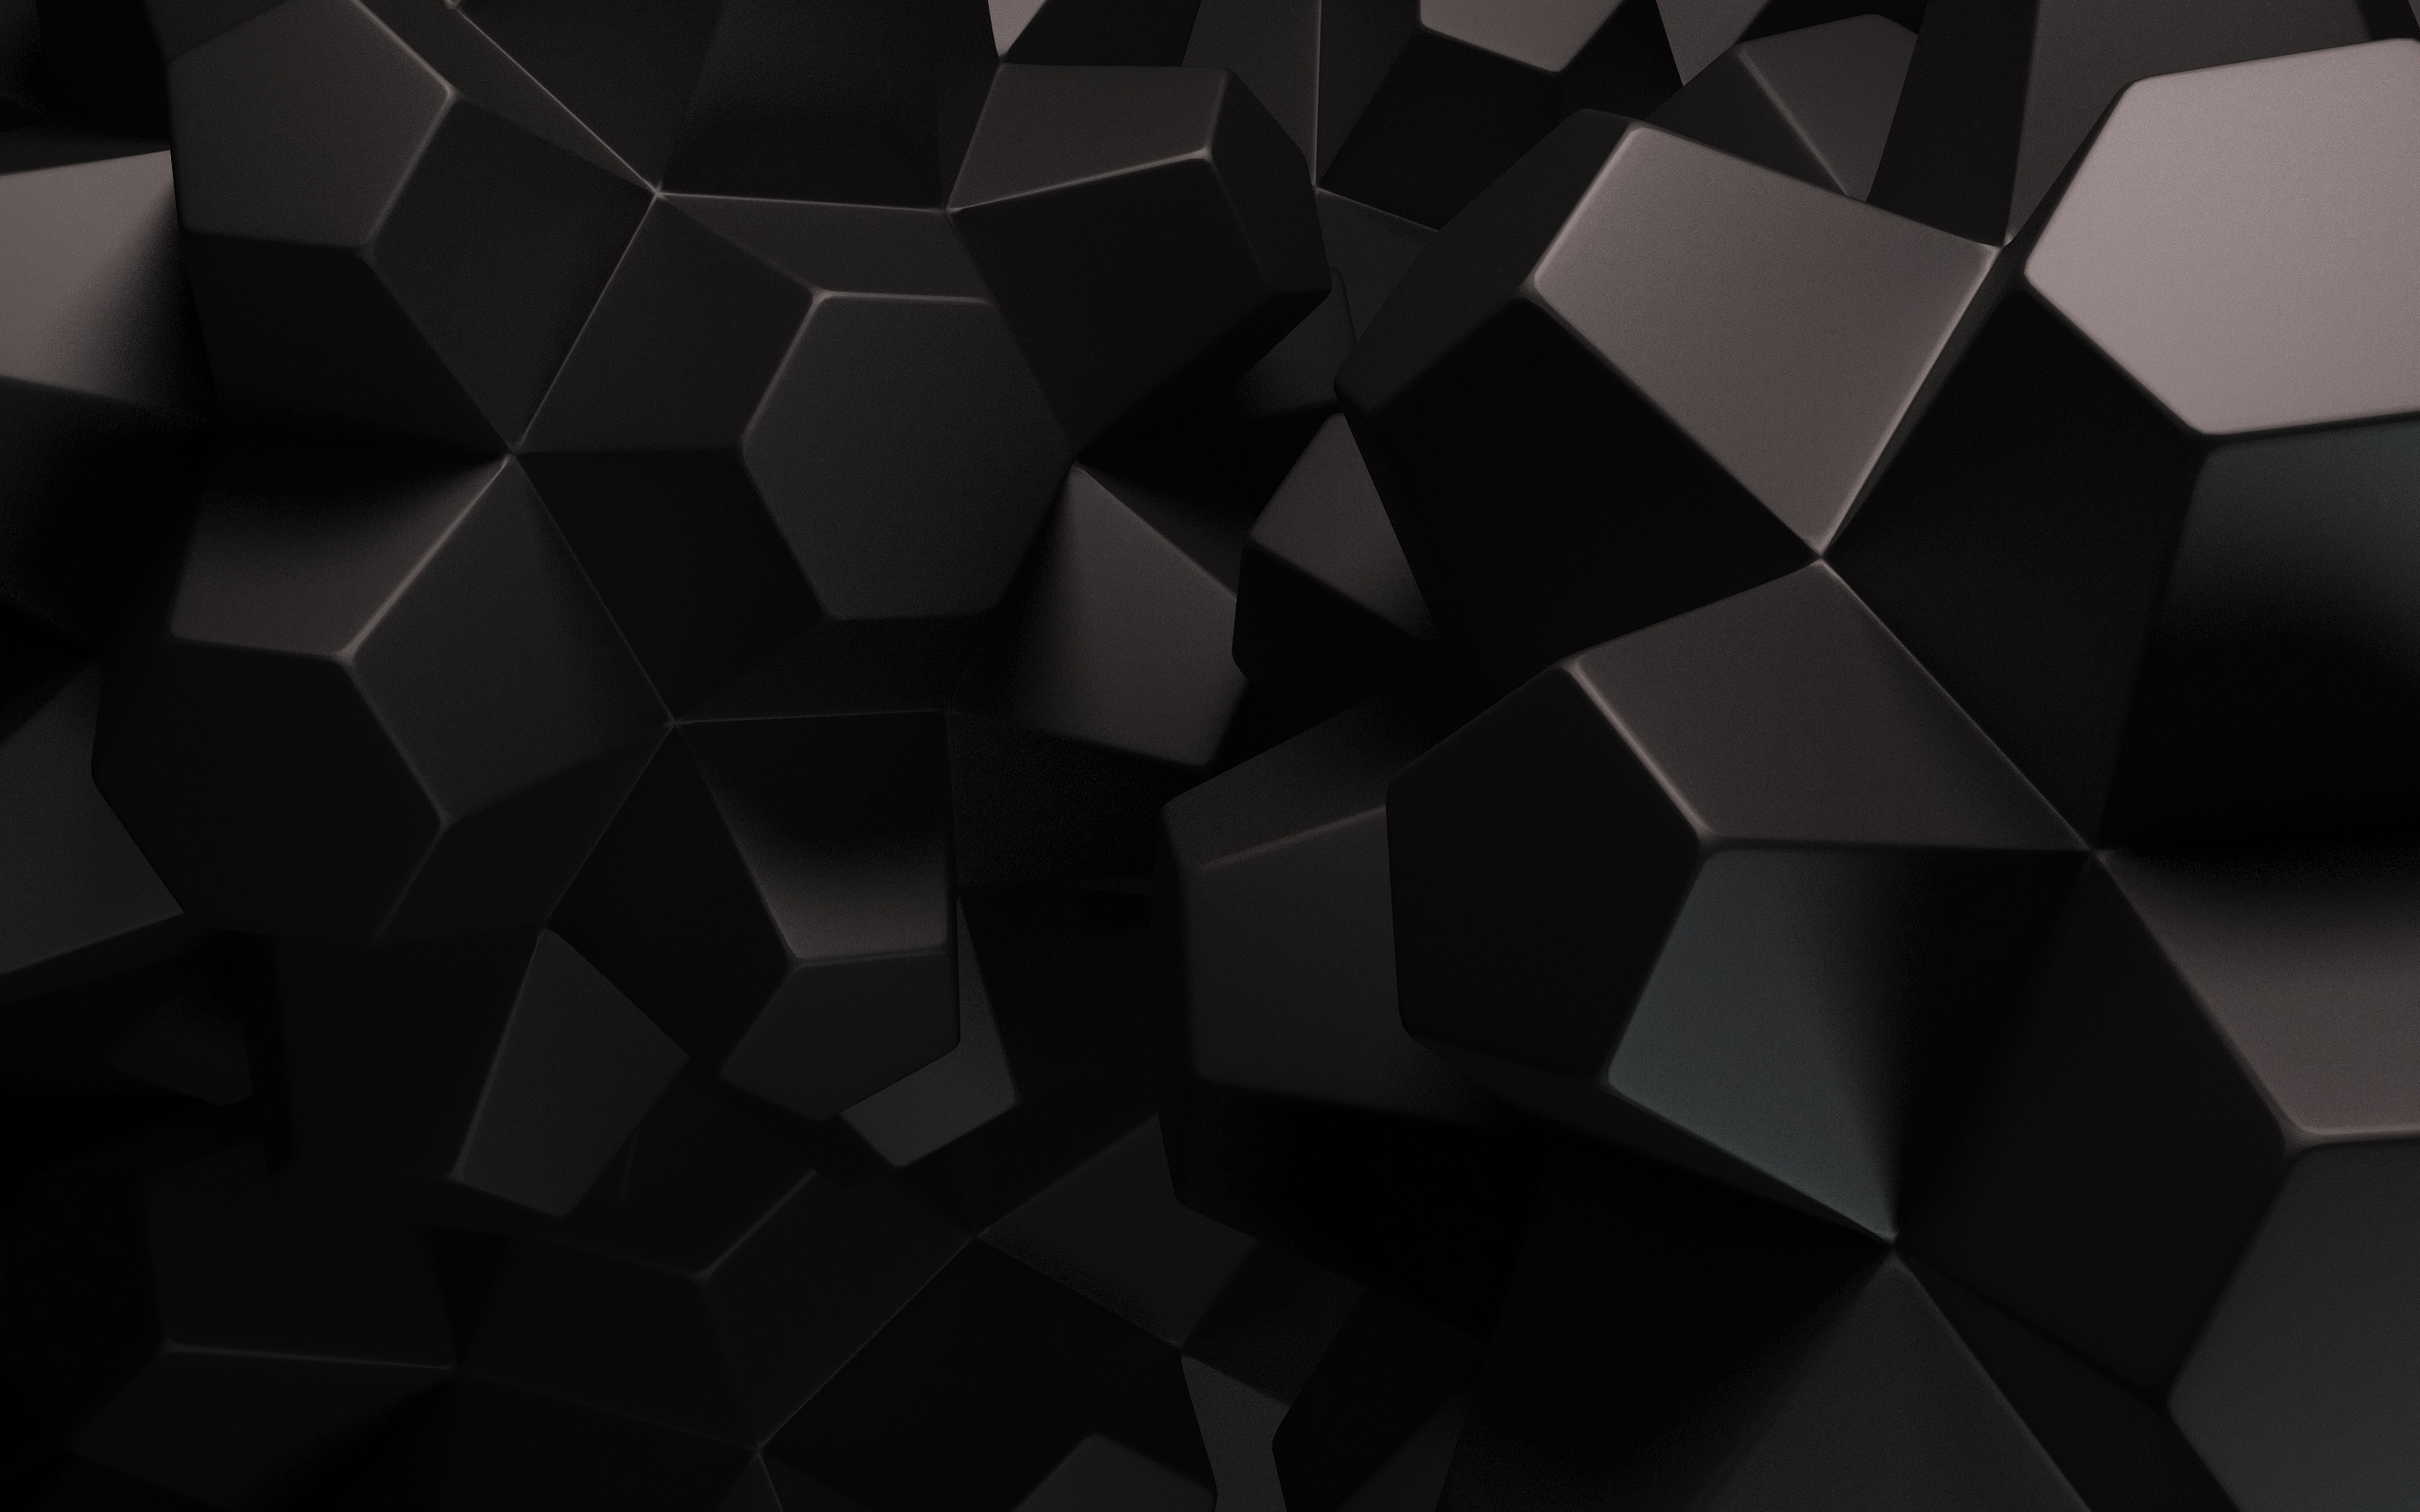 Hd Wallpaper Abstract Black naturegalleryxyz 2560x1600